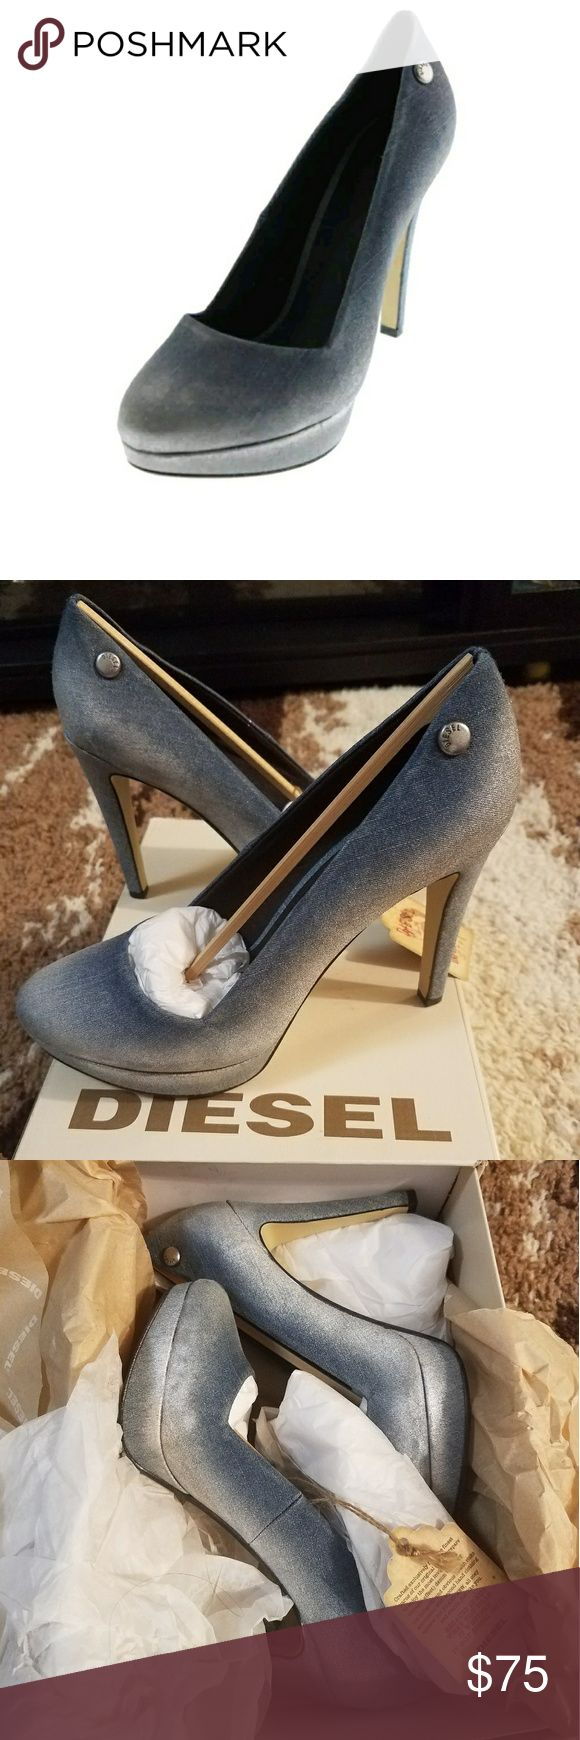 """🆕DIESEL DENIM FAME KRISTALY PLATFORM These knockout heels are absolutely gorgeous!! The color is listed as Indigo/Silver or """"Krystaly Blue"""" and that is the perfect name for these shimmering beauties. They are a distressed denim kicked up a notch with a silver shimmer.  The heel is slim with height listed at 4 3/4"""" with platform height of 3/4"""". DIESEL  Shoes Platforms"""